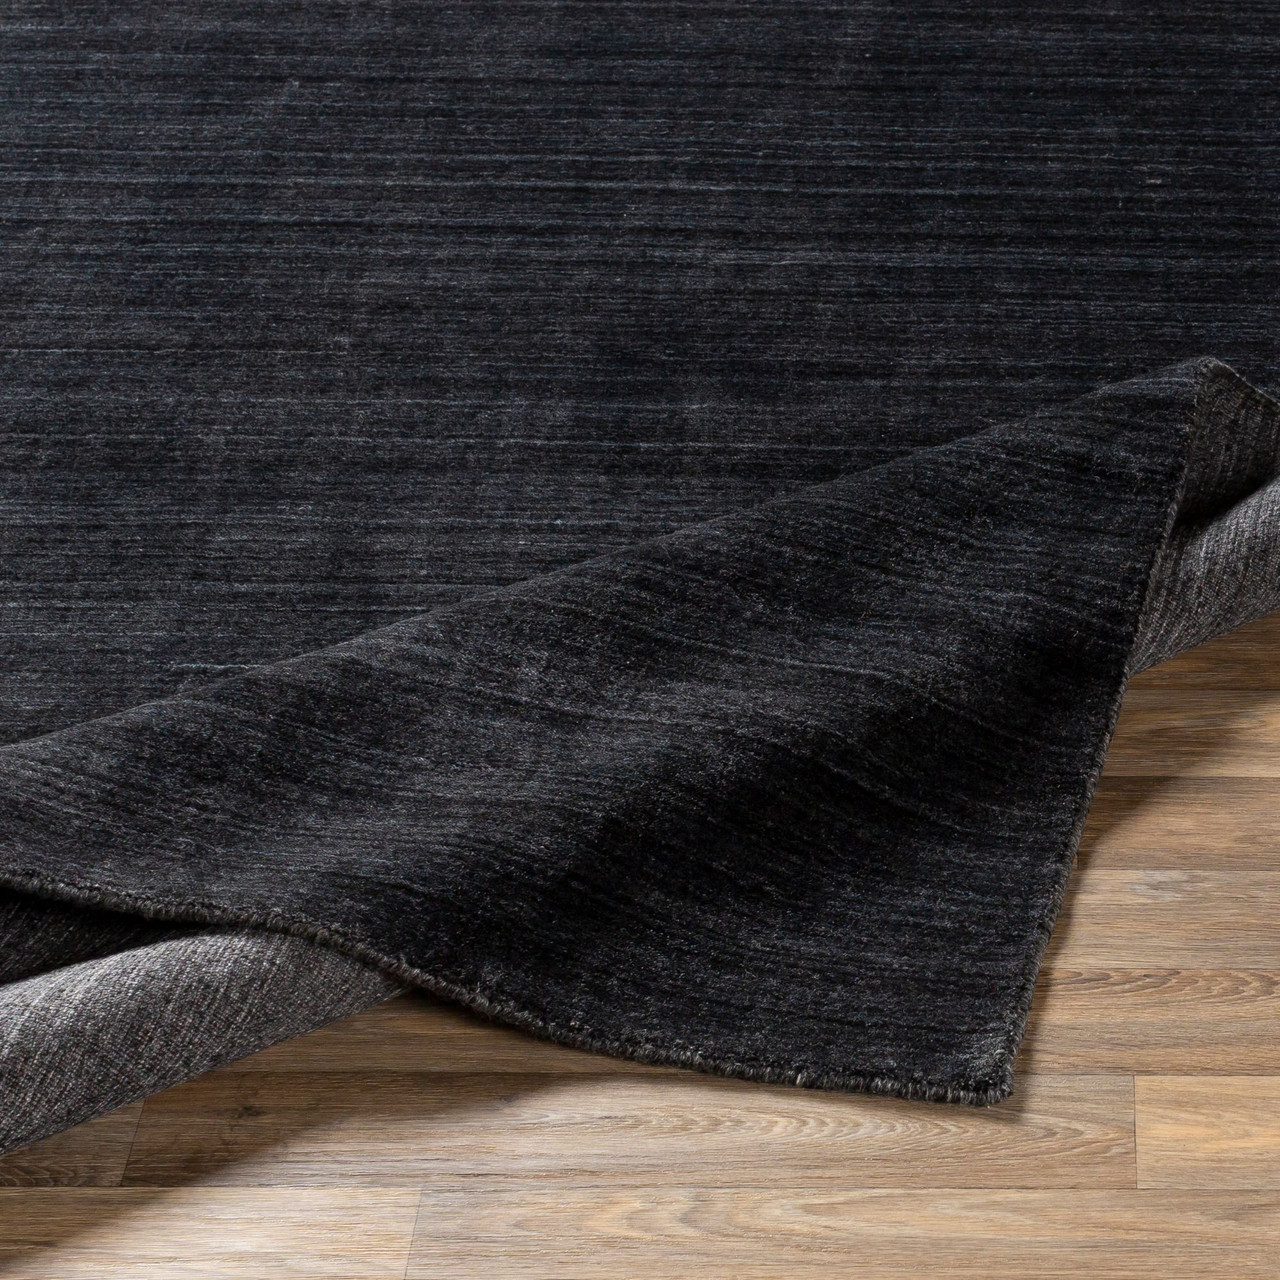 2 5 X 8 Solid Black Hand Knotted Rectangular Area Throw Rug Runner 33439086